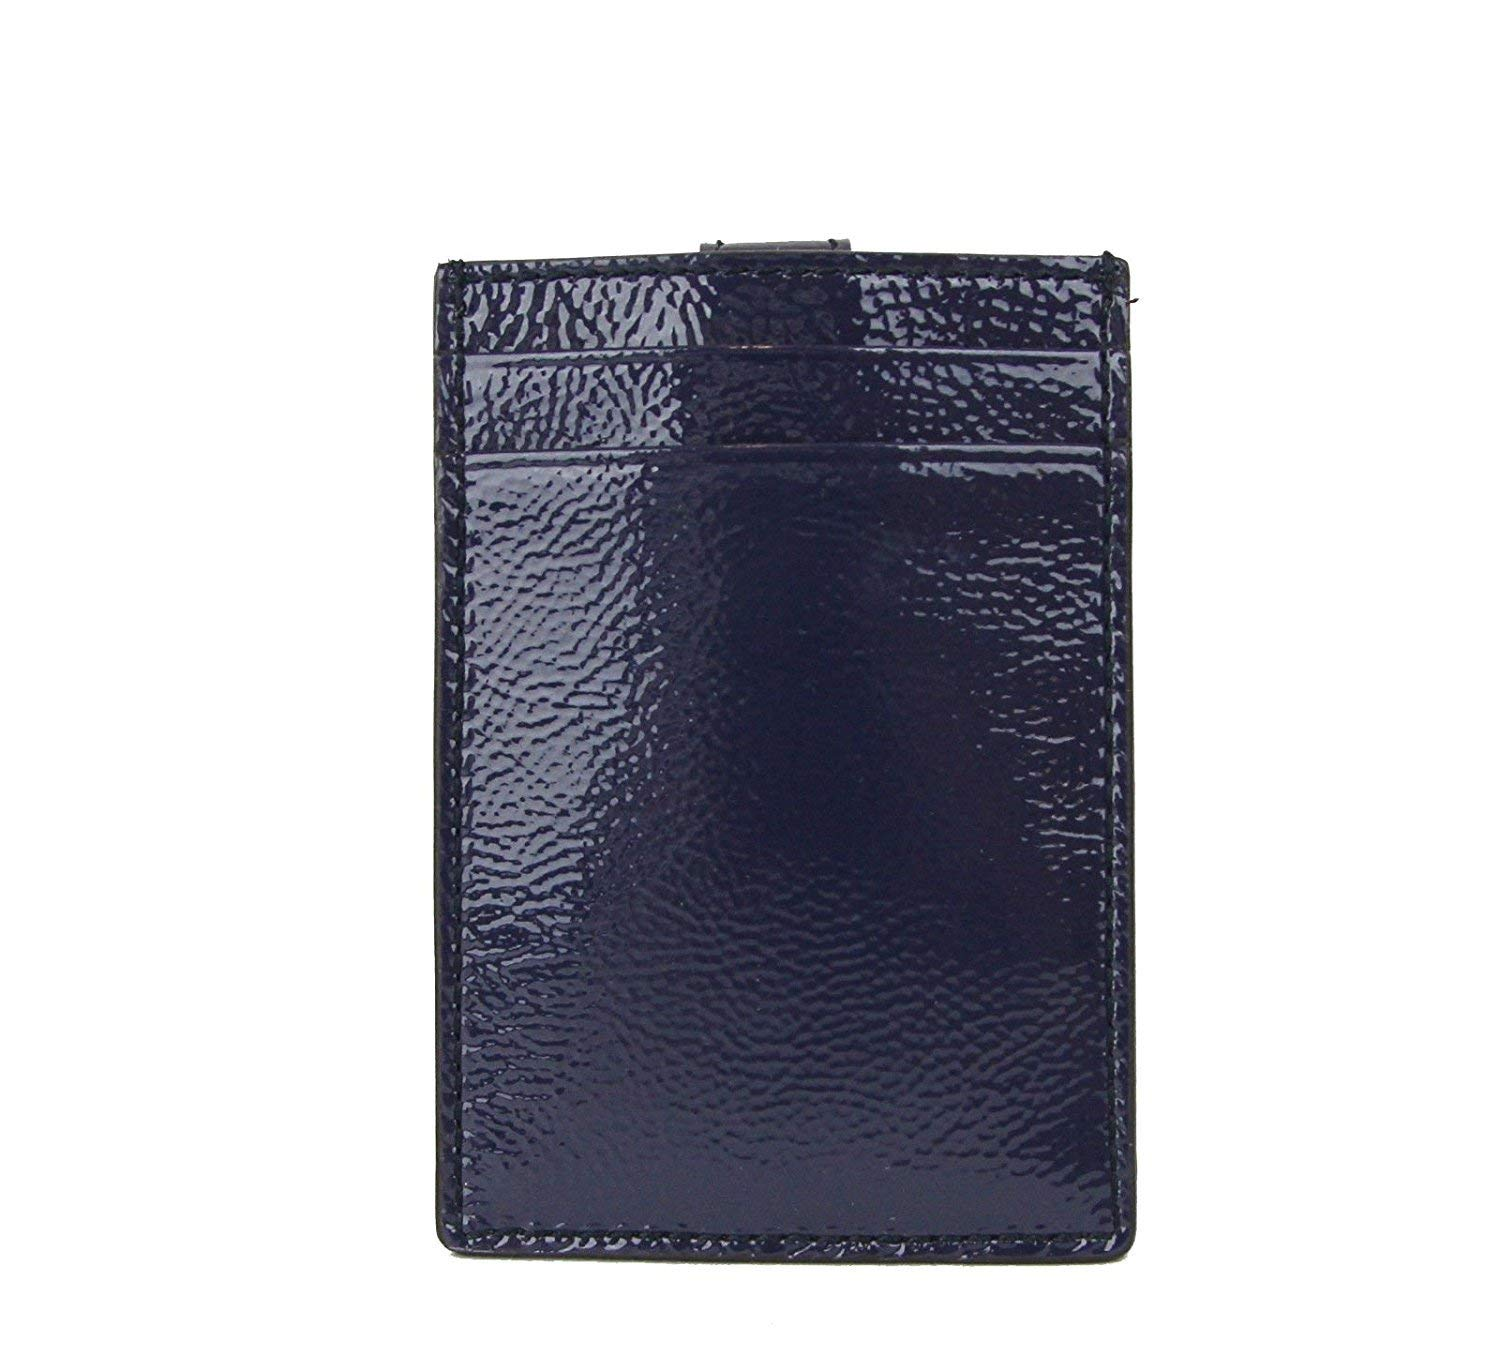 Gucci Women's Soho Blue Patent Leather Card Case Pouch 338331 4233 by Gucci (Image #2)